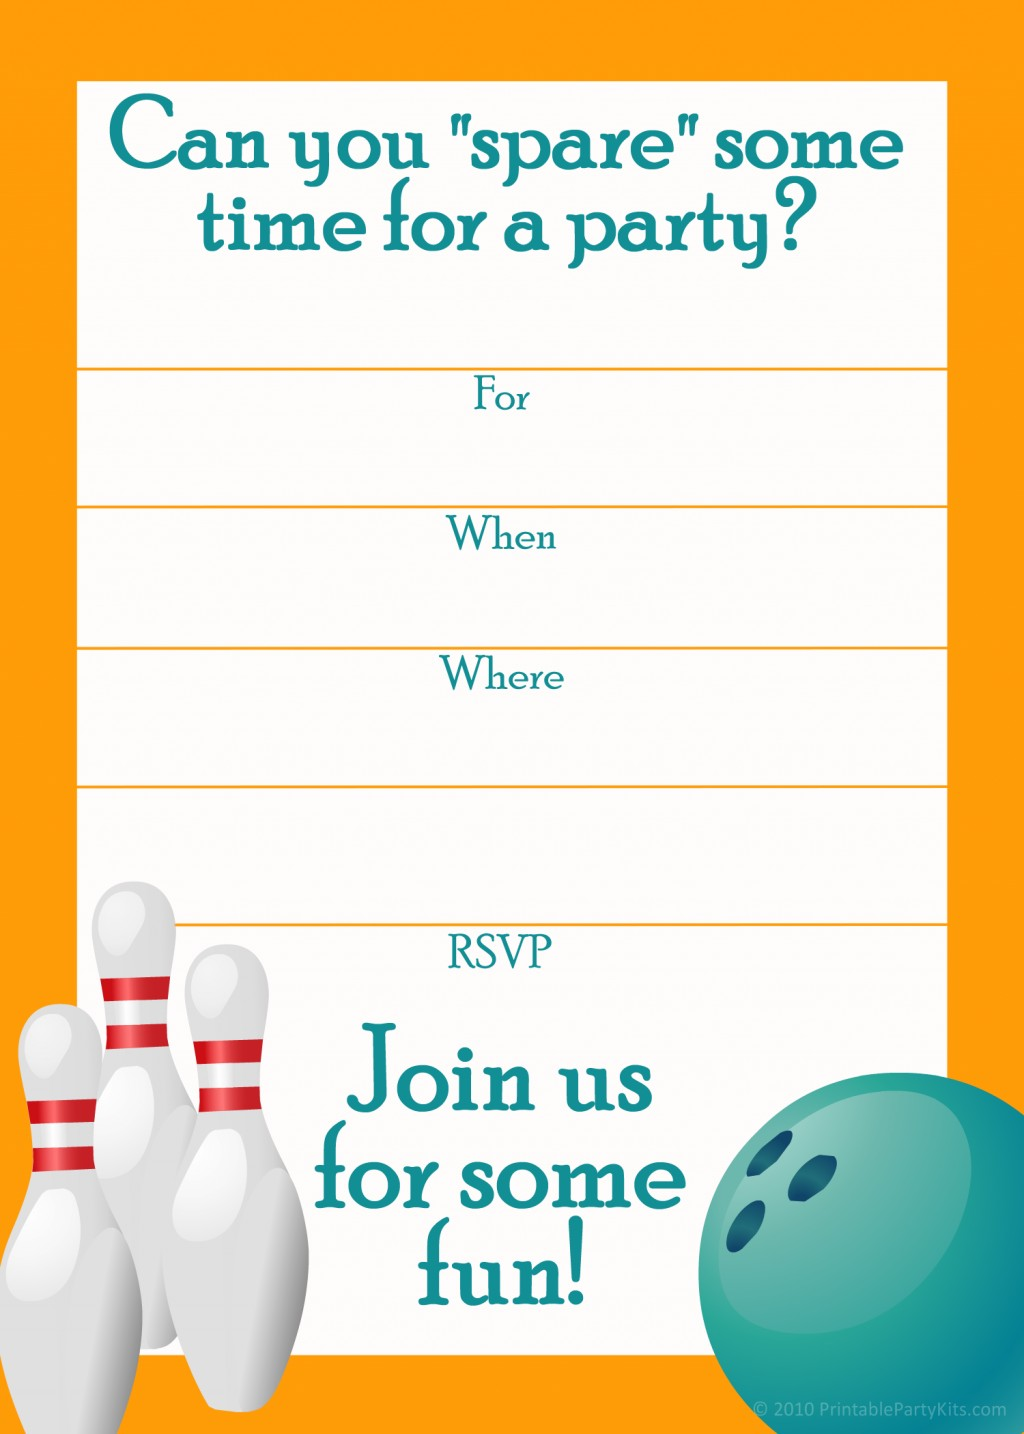 free printable birthday party invitations templates ; 1924f80e2b38e2d69c83db4498aa84a1